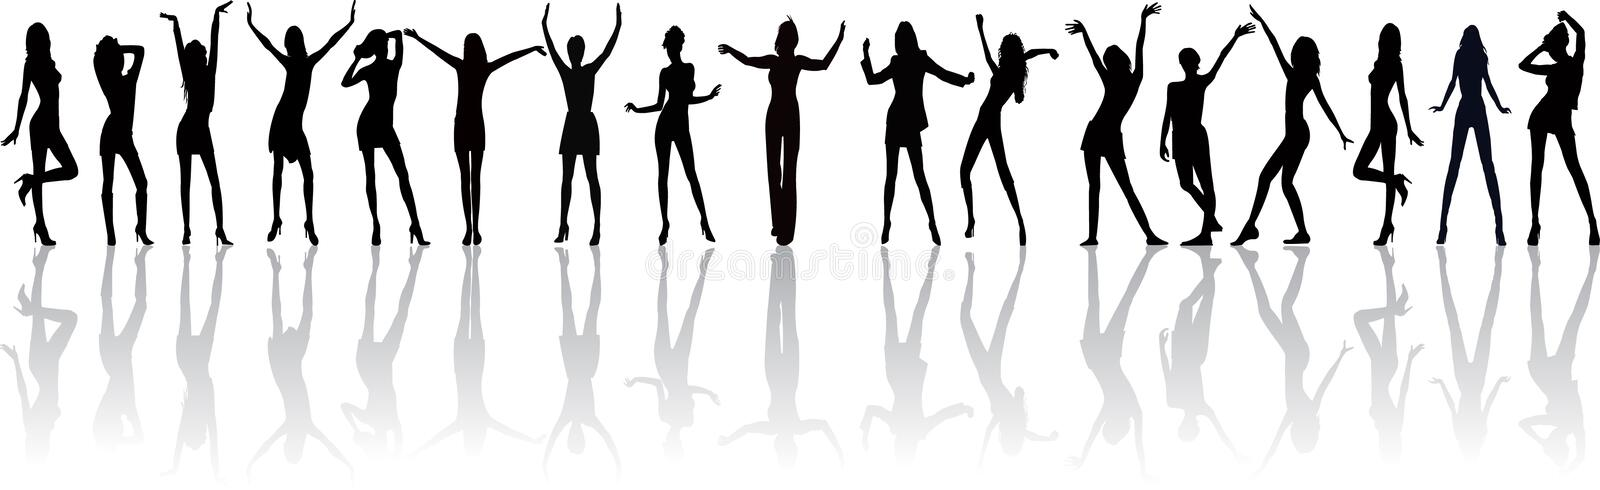 Woman Silhouettes Stock Photo